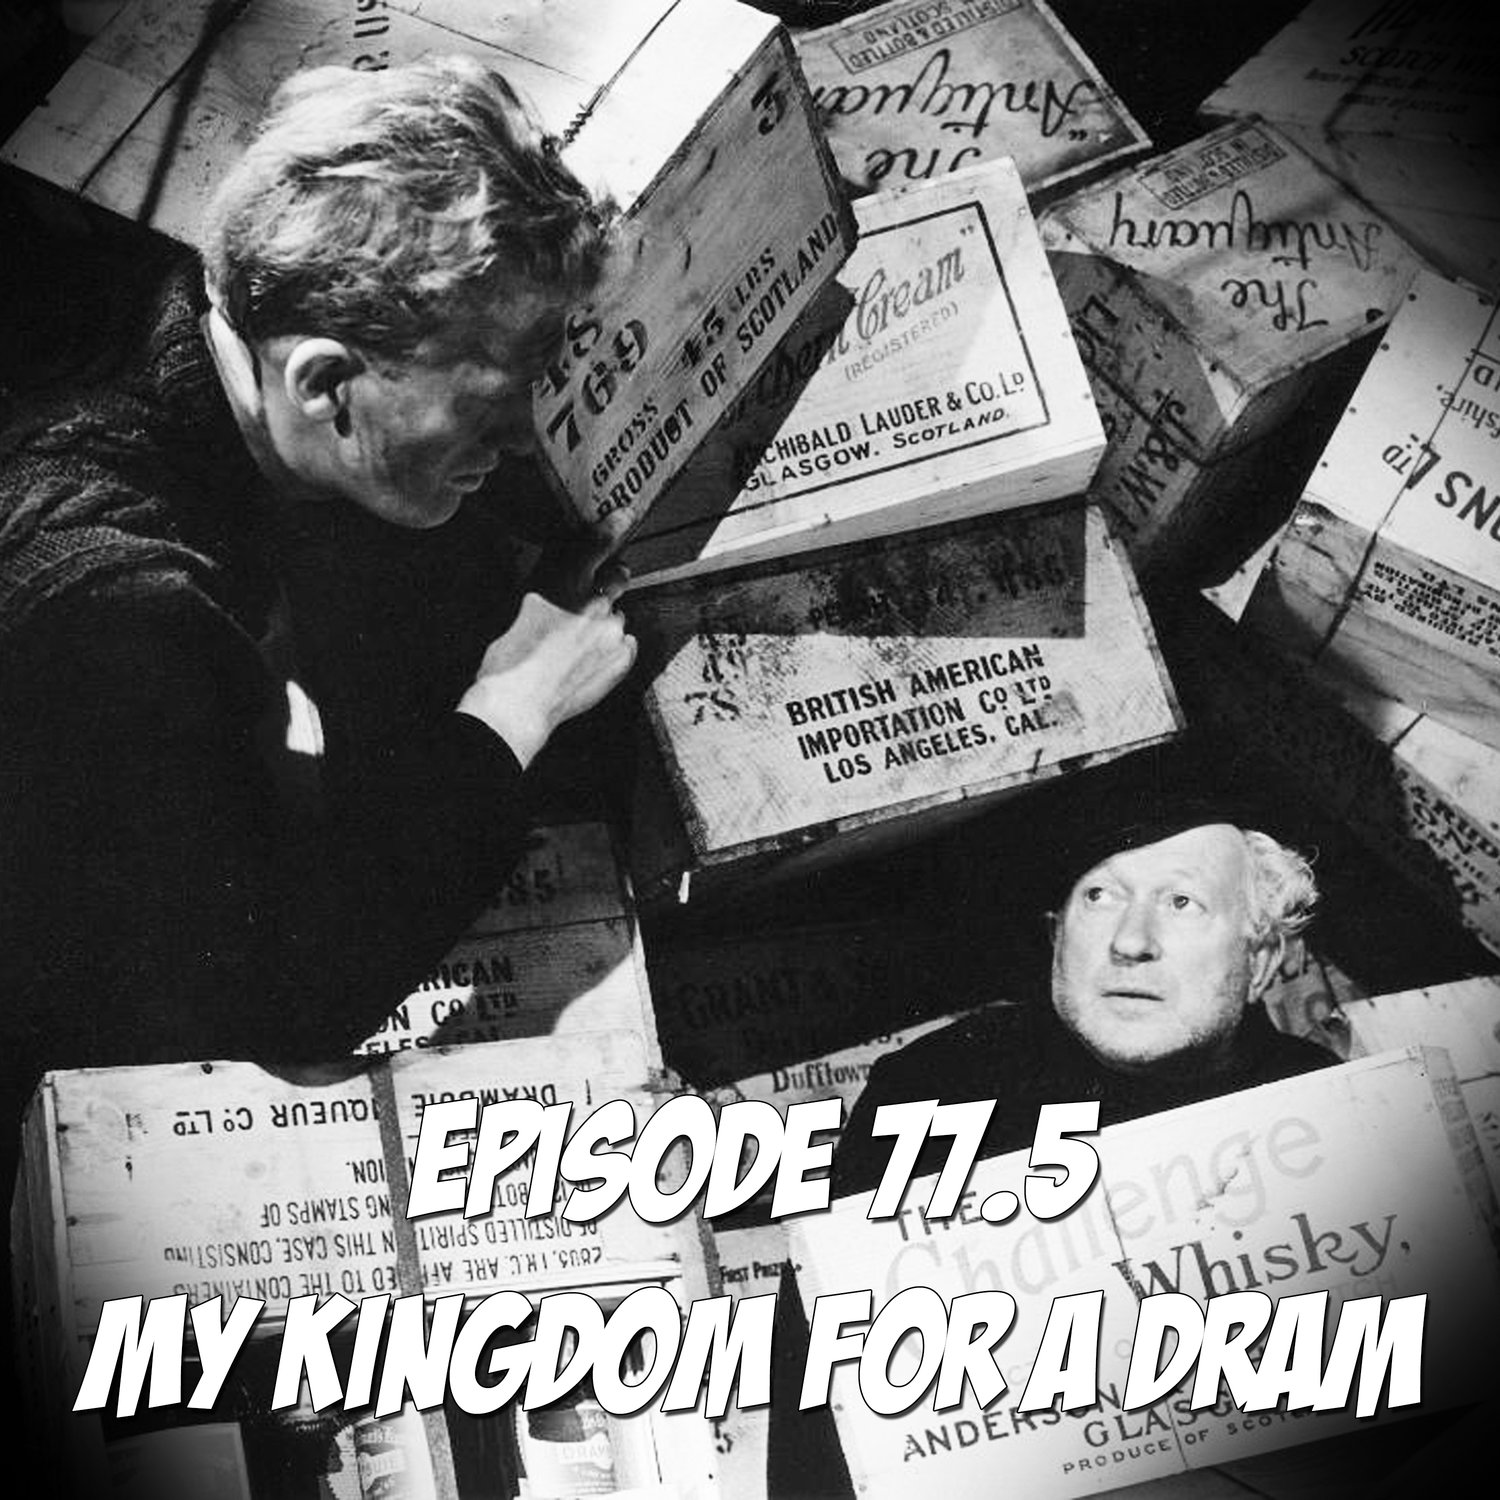 Episode 77.5 - My Kingdom For A Dram!